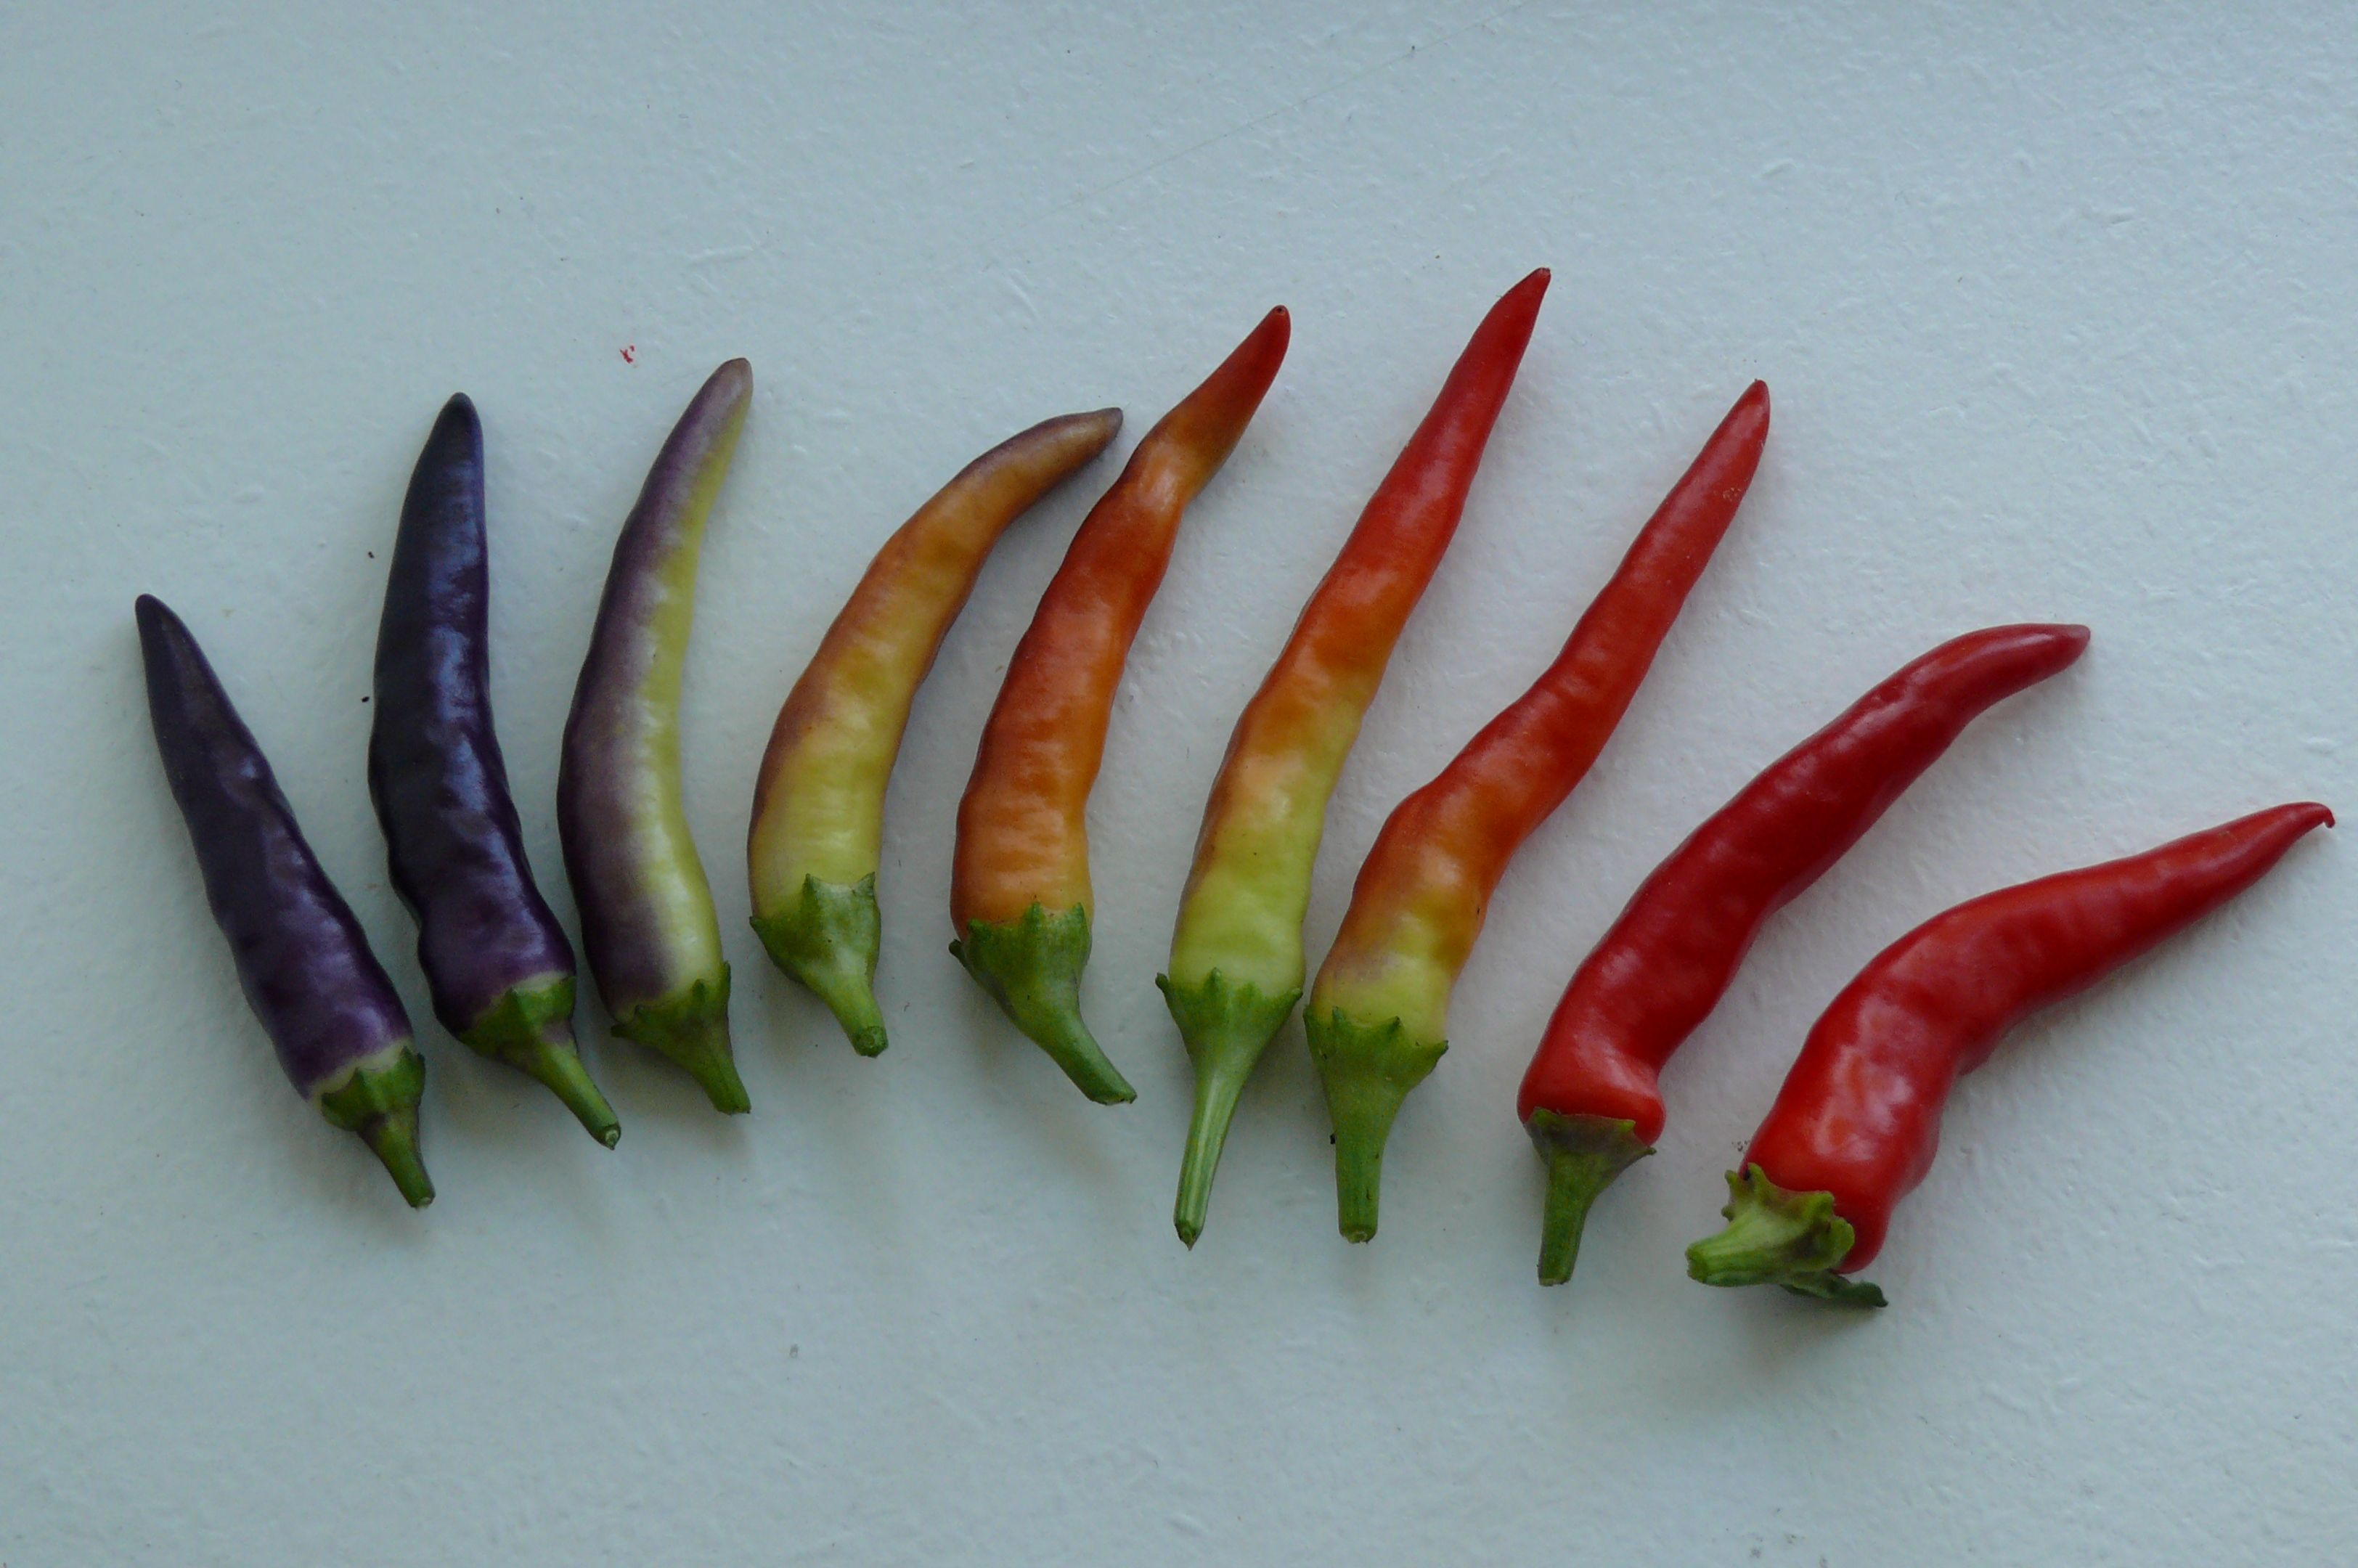 Chilli, chili, masquerade from purple to red | Peppers | Pinterest ...